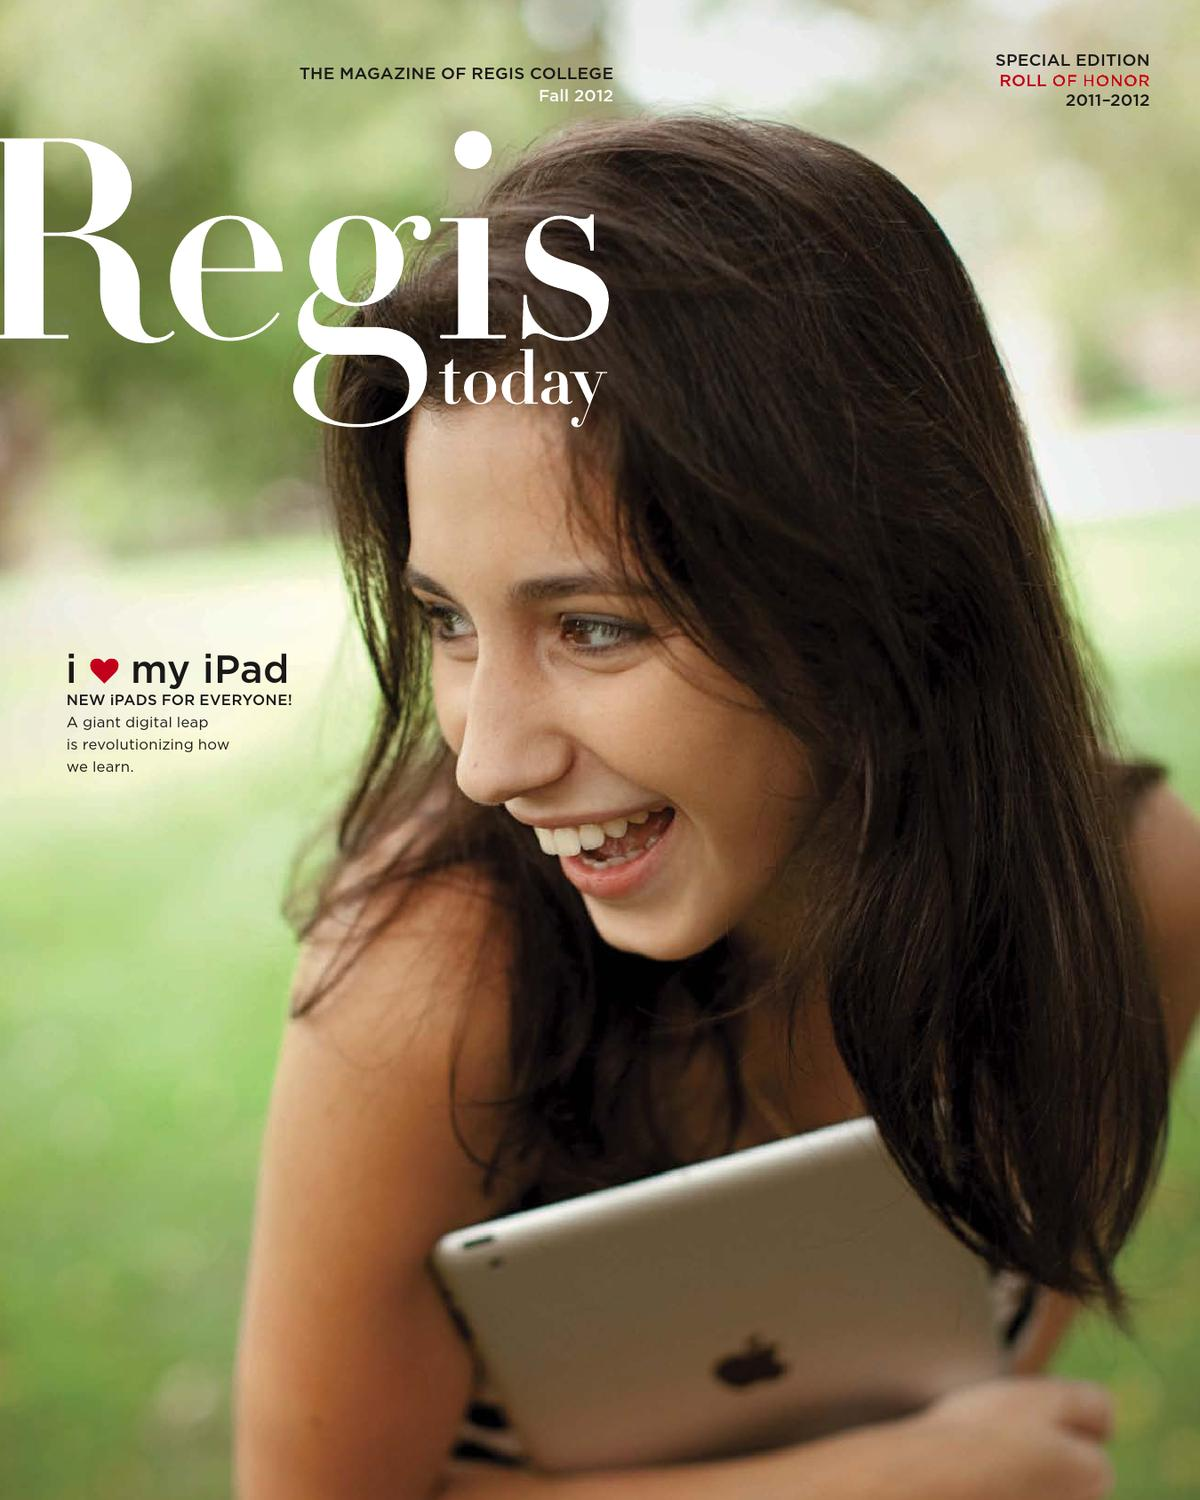 Regis Today Fall 2012 by Regis College - issuu